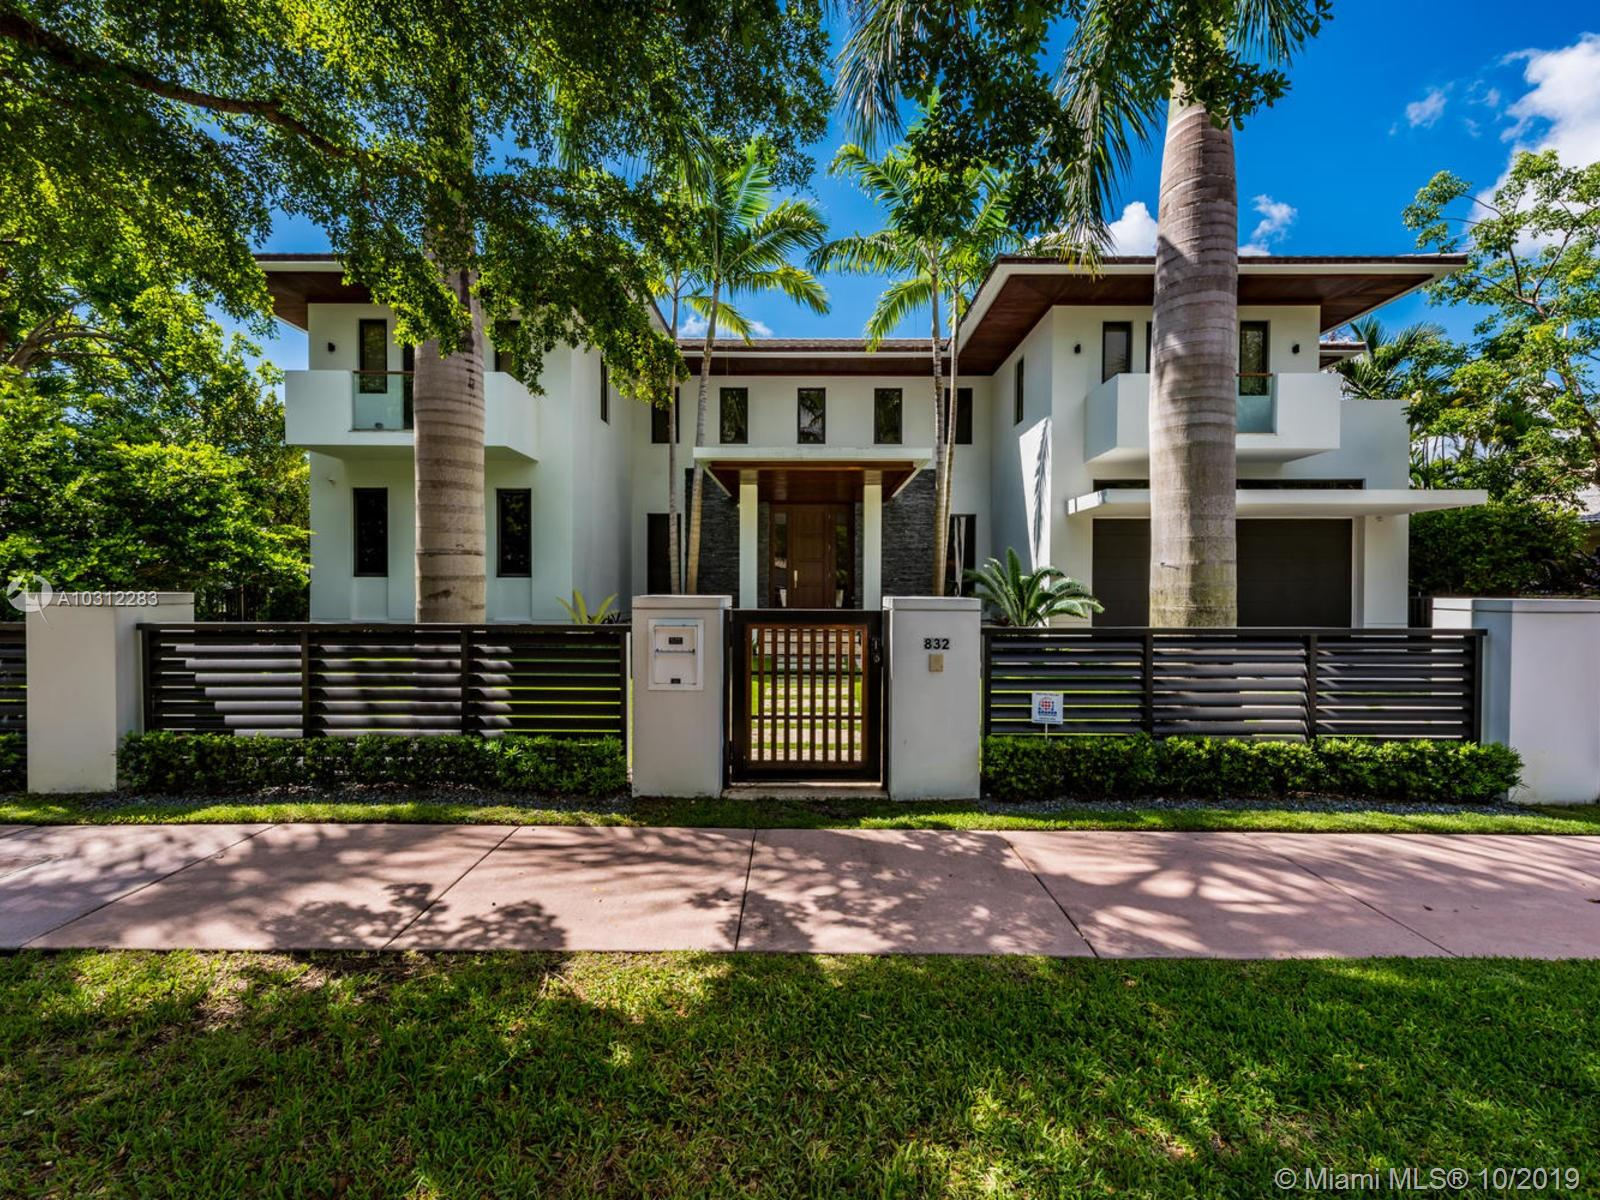 832 Alfonso Ave, Coral Gables, FL 33146